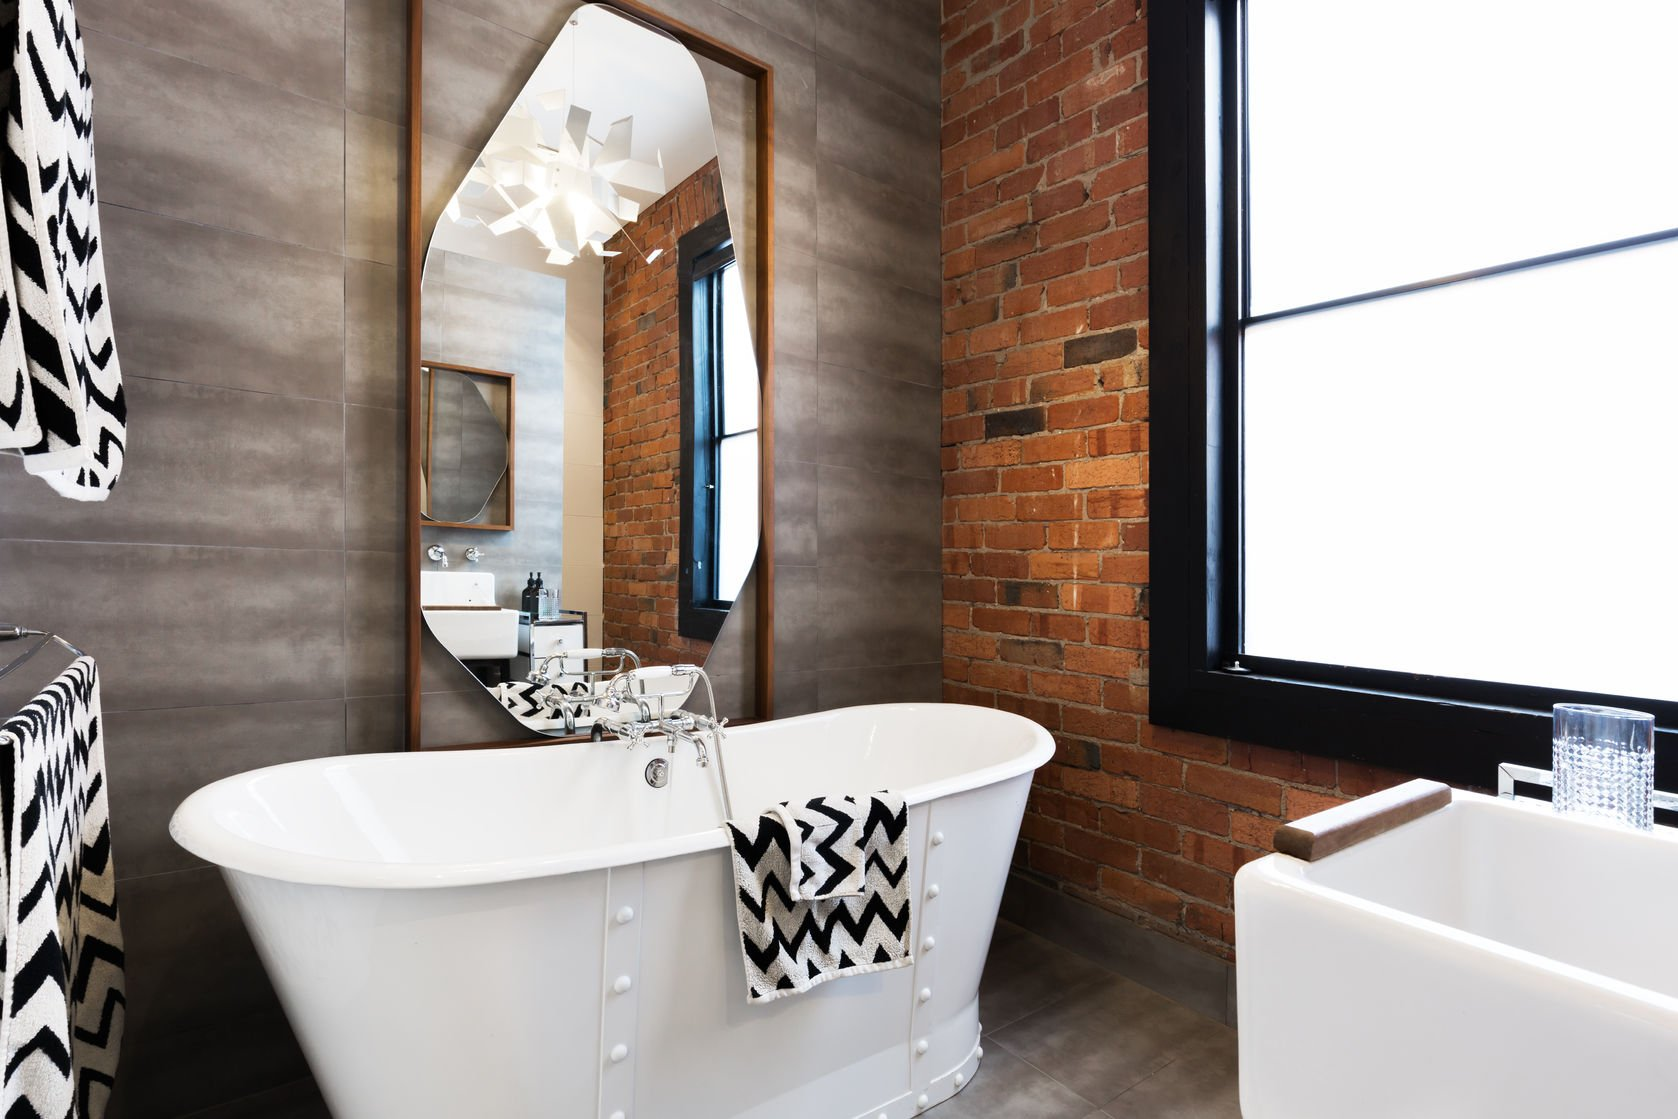 Bathroom Trends to Avoid in 2018: What Showroom Buyers Should Know